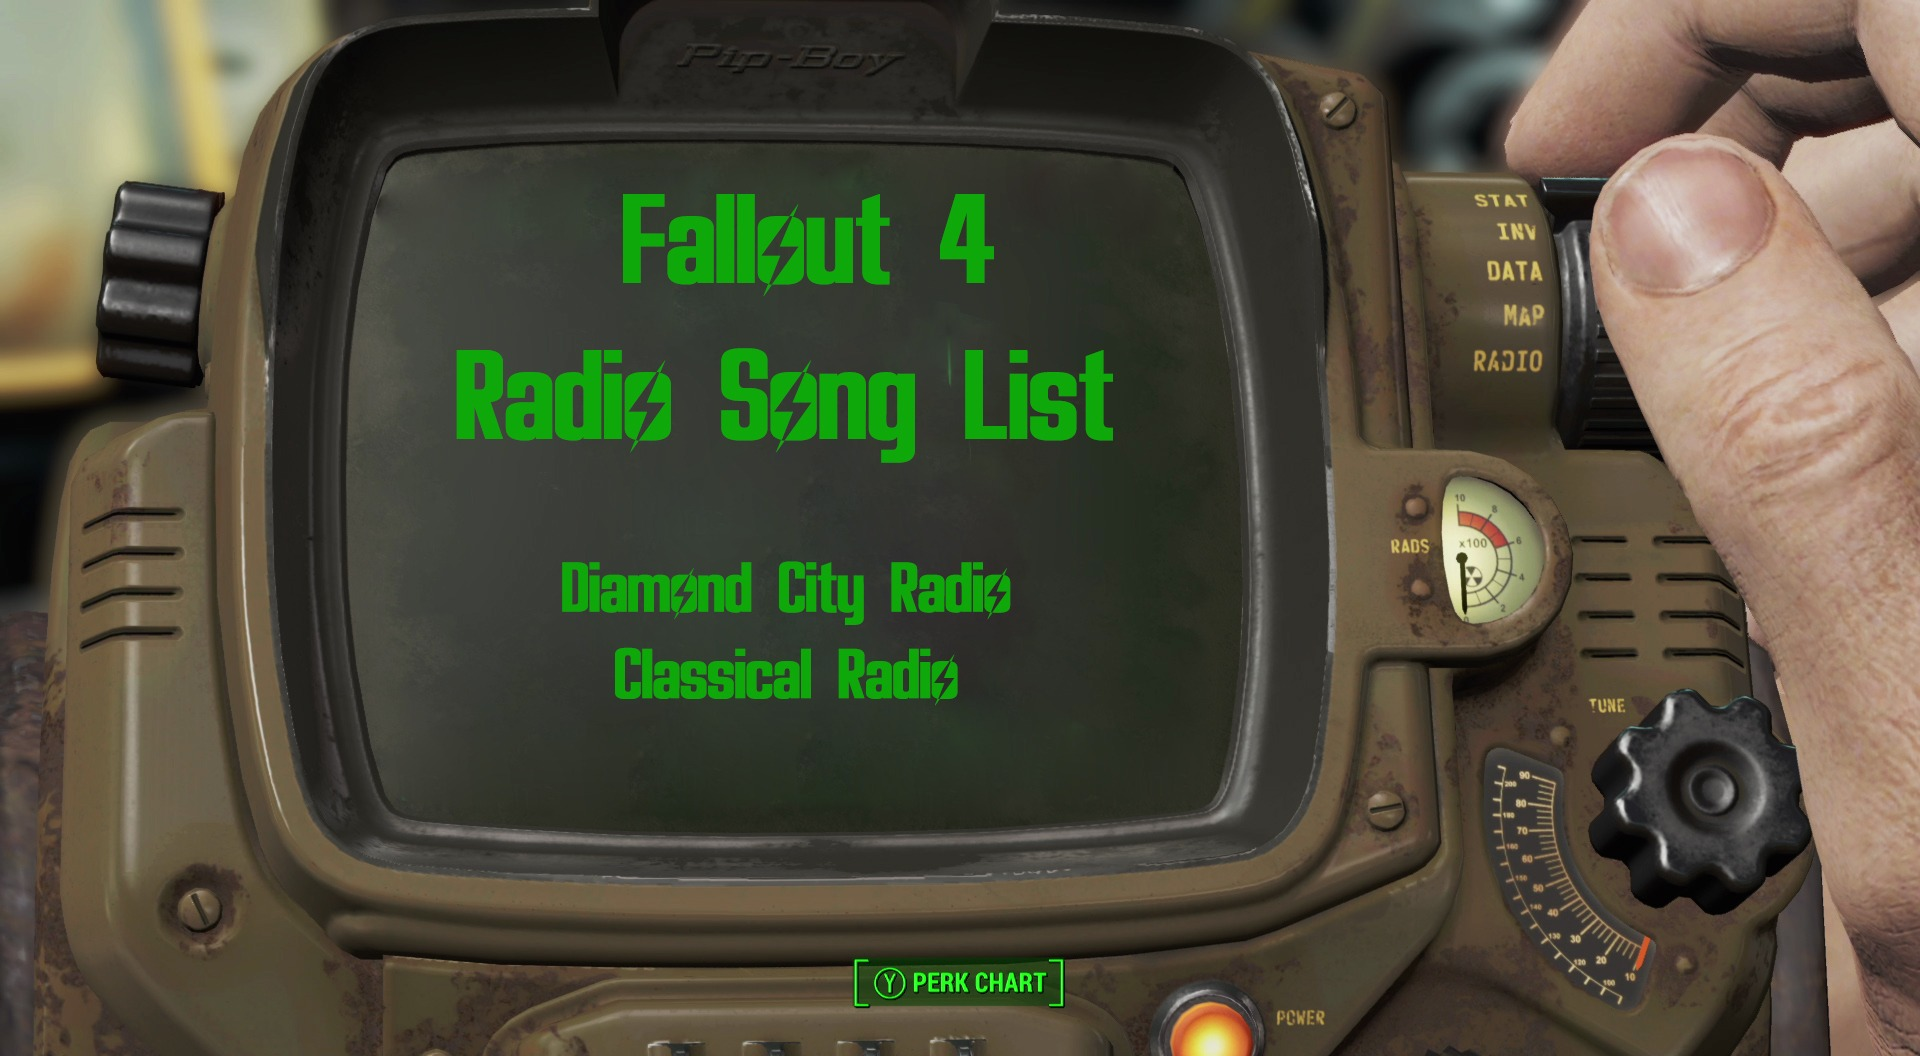 Fallout 4 Radios Songs List -Diamond City and Classical Radio Stations